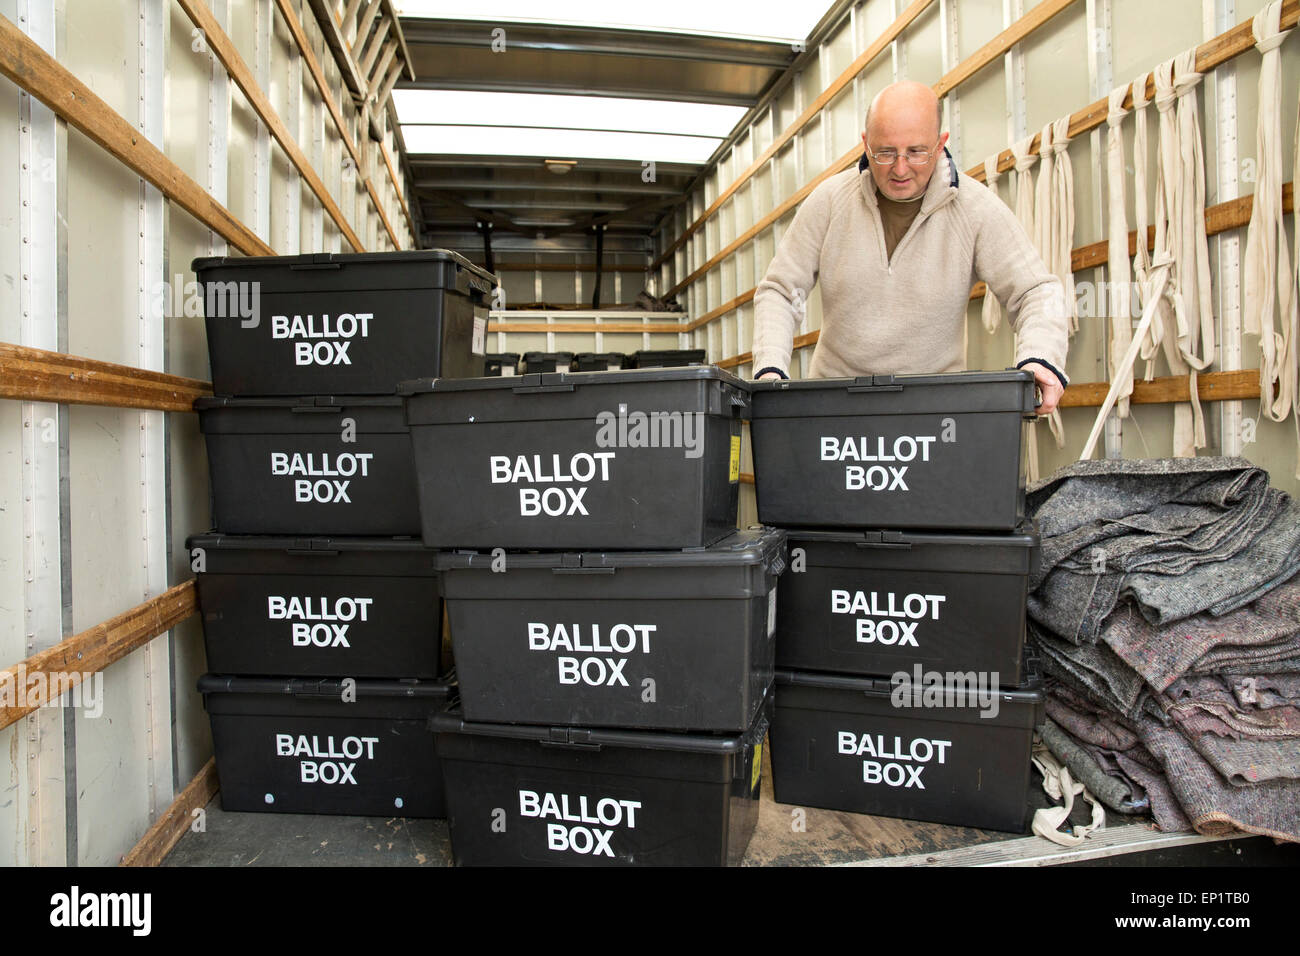 Ballot boxes being delivered to Sheldon Heath community centre ready for voting in the General Election - Stock Image